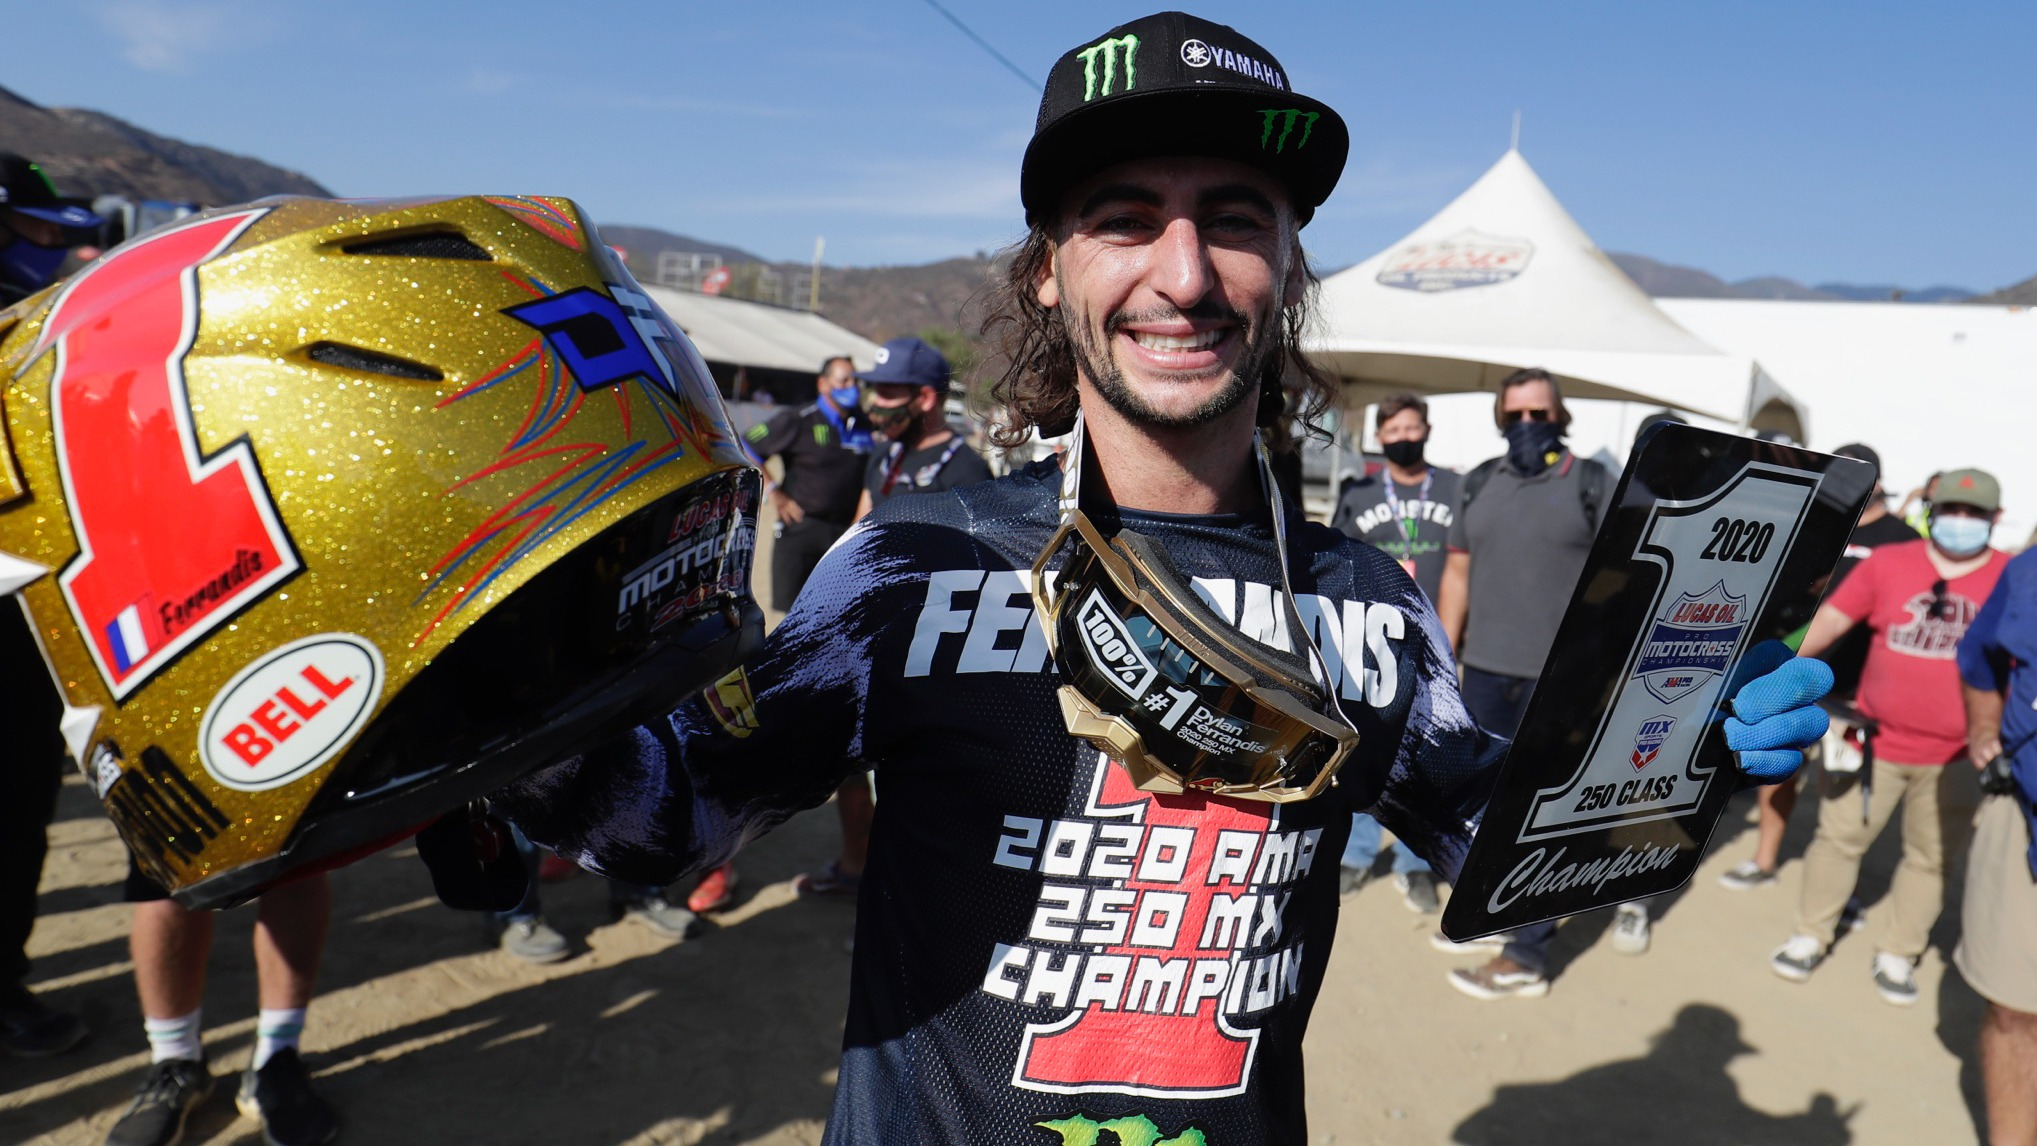 Ferrandis Claims Career-First Pro Motocross Championship